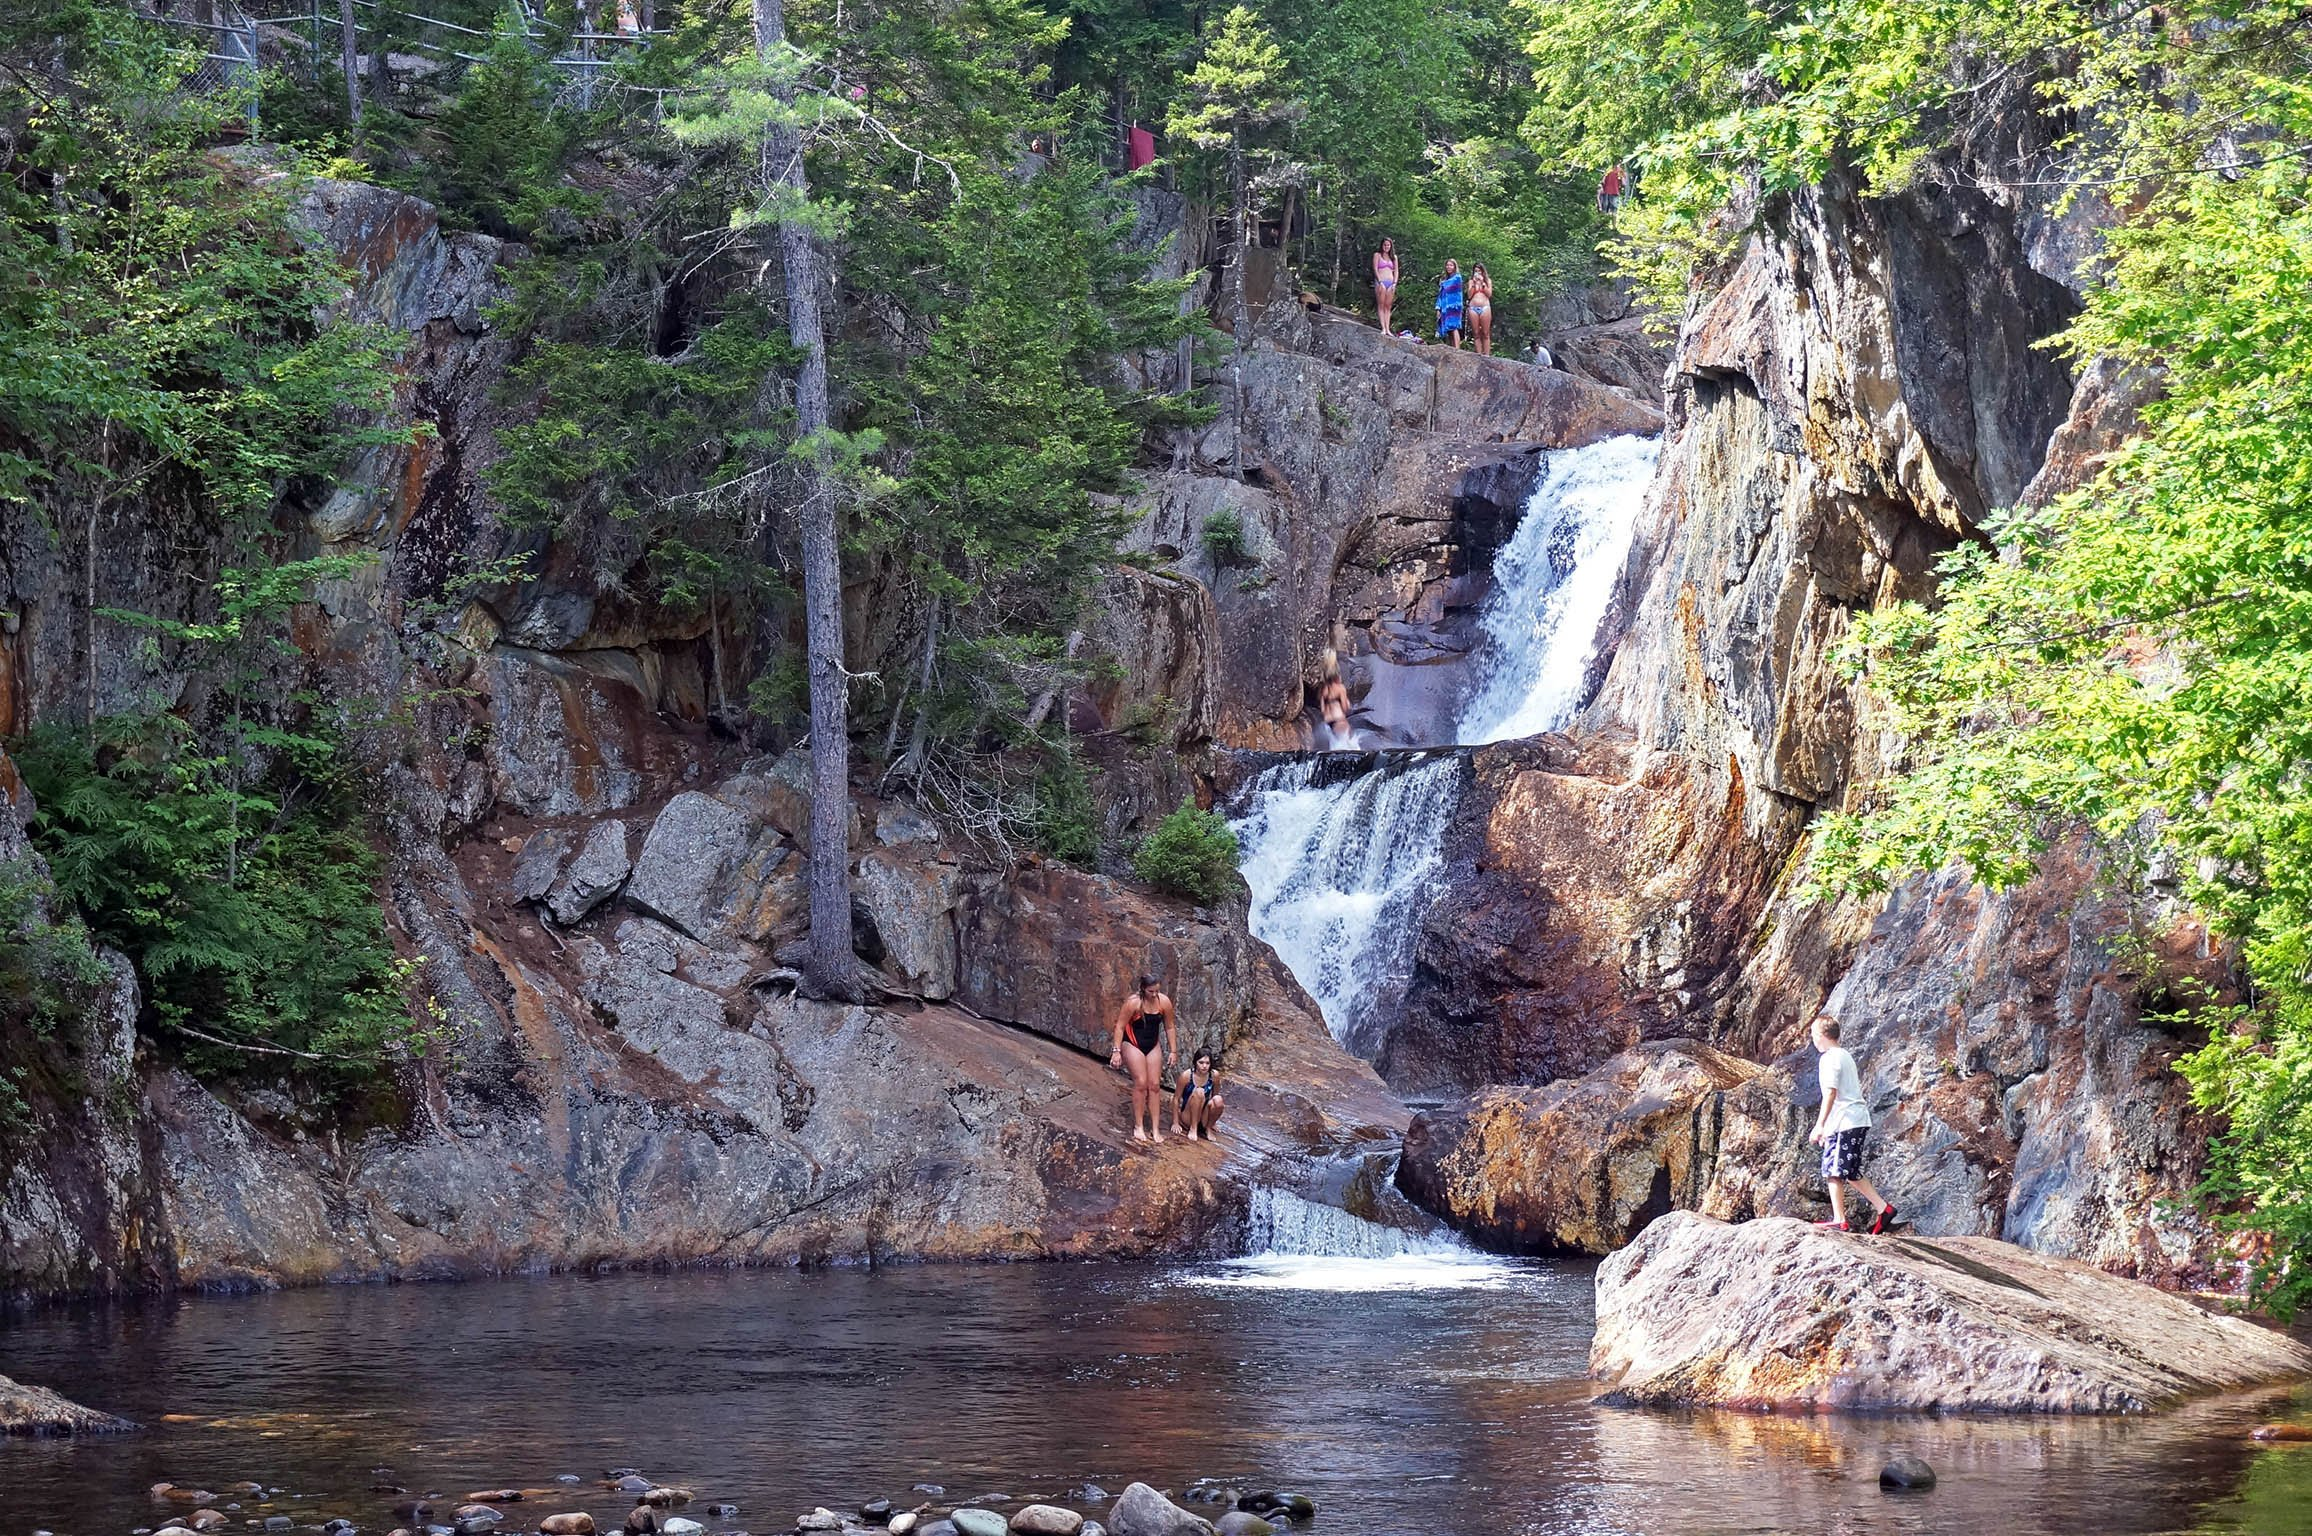 Smalls Falls, on Route 4 just south of Rangeley, is one of several waterfalls in the Rangeley Lakes region.